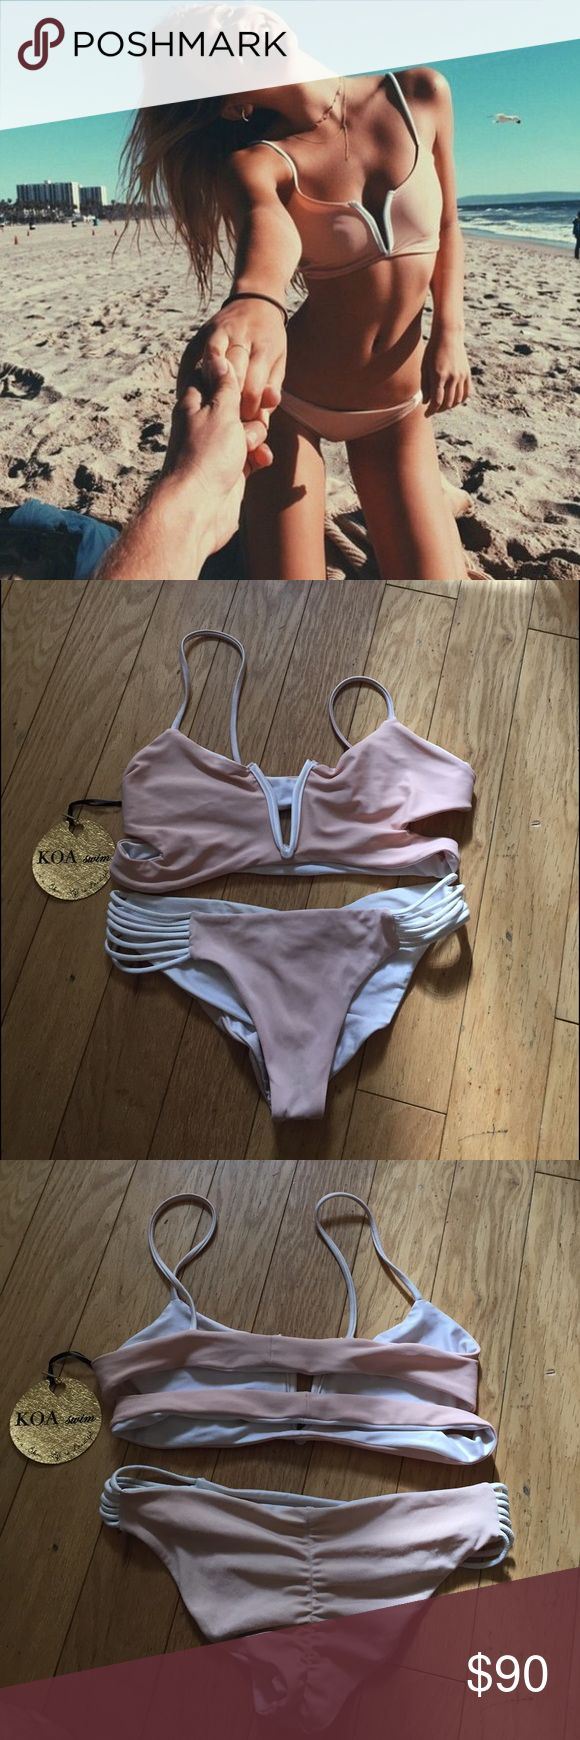 Koa Swim Horizon Top and Bottom Seen on Alexis Ren. Sold out everywhere. There is some fading due to wear but still in overall great condition. Reversible. Open to trading for coulbourne, mikoh, stone fox, acacia, or other designer swimwear. 80$ on ♏️ercari. acacia swimwear Swim Bikinis